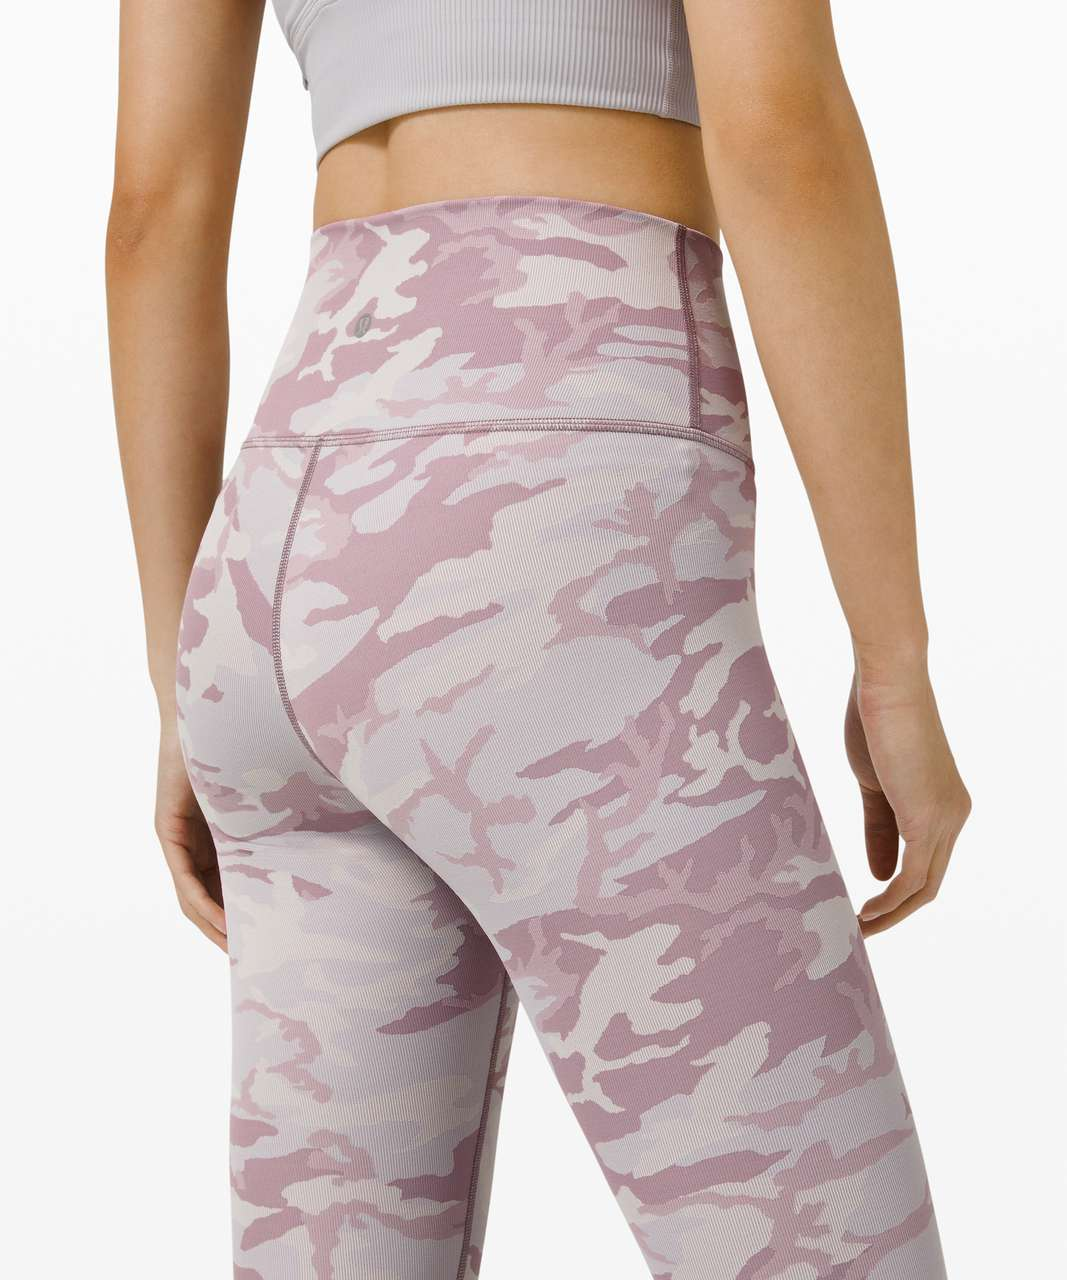 "Lululemon Wunder Under High-Rise Tight 28"" *Luxtreme - Incognito Camo Jacquard Iced Iris Violet Verbana"